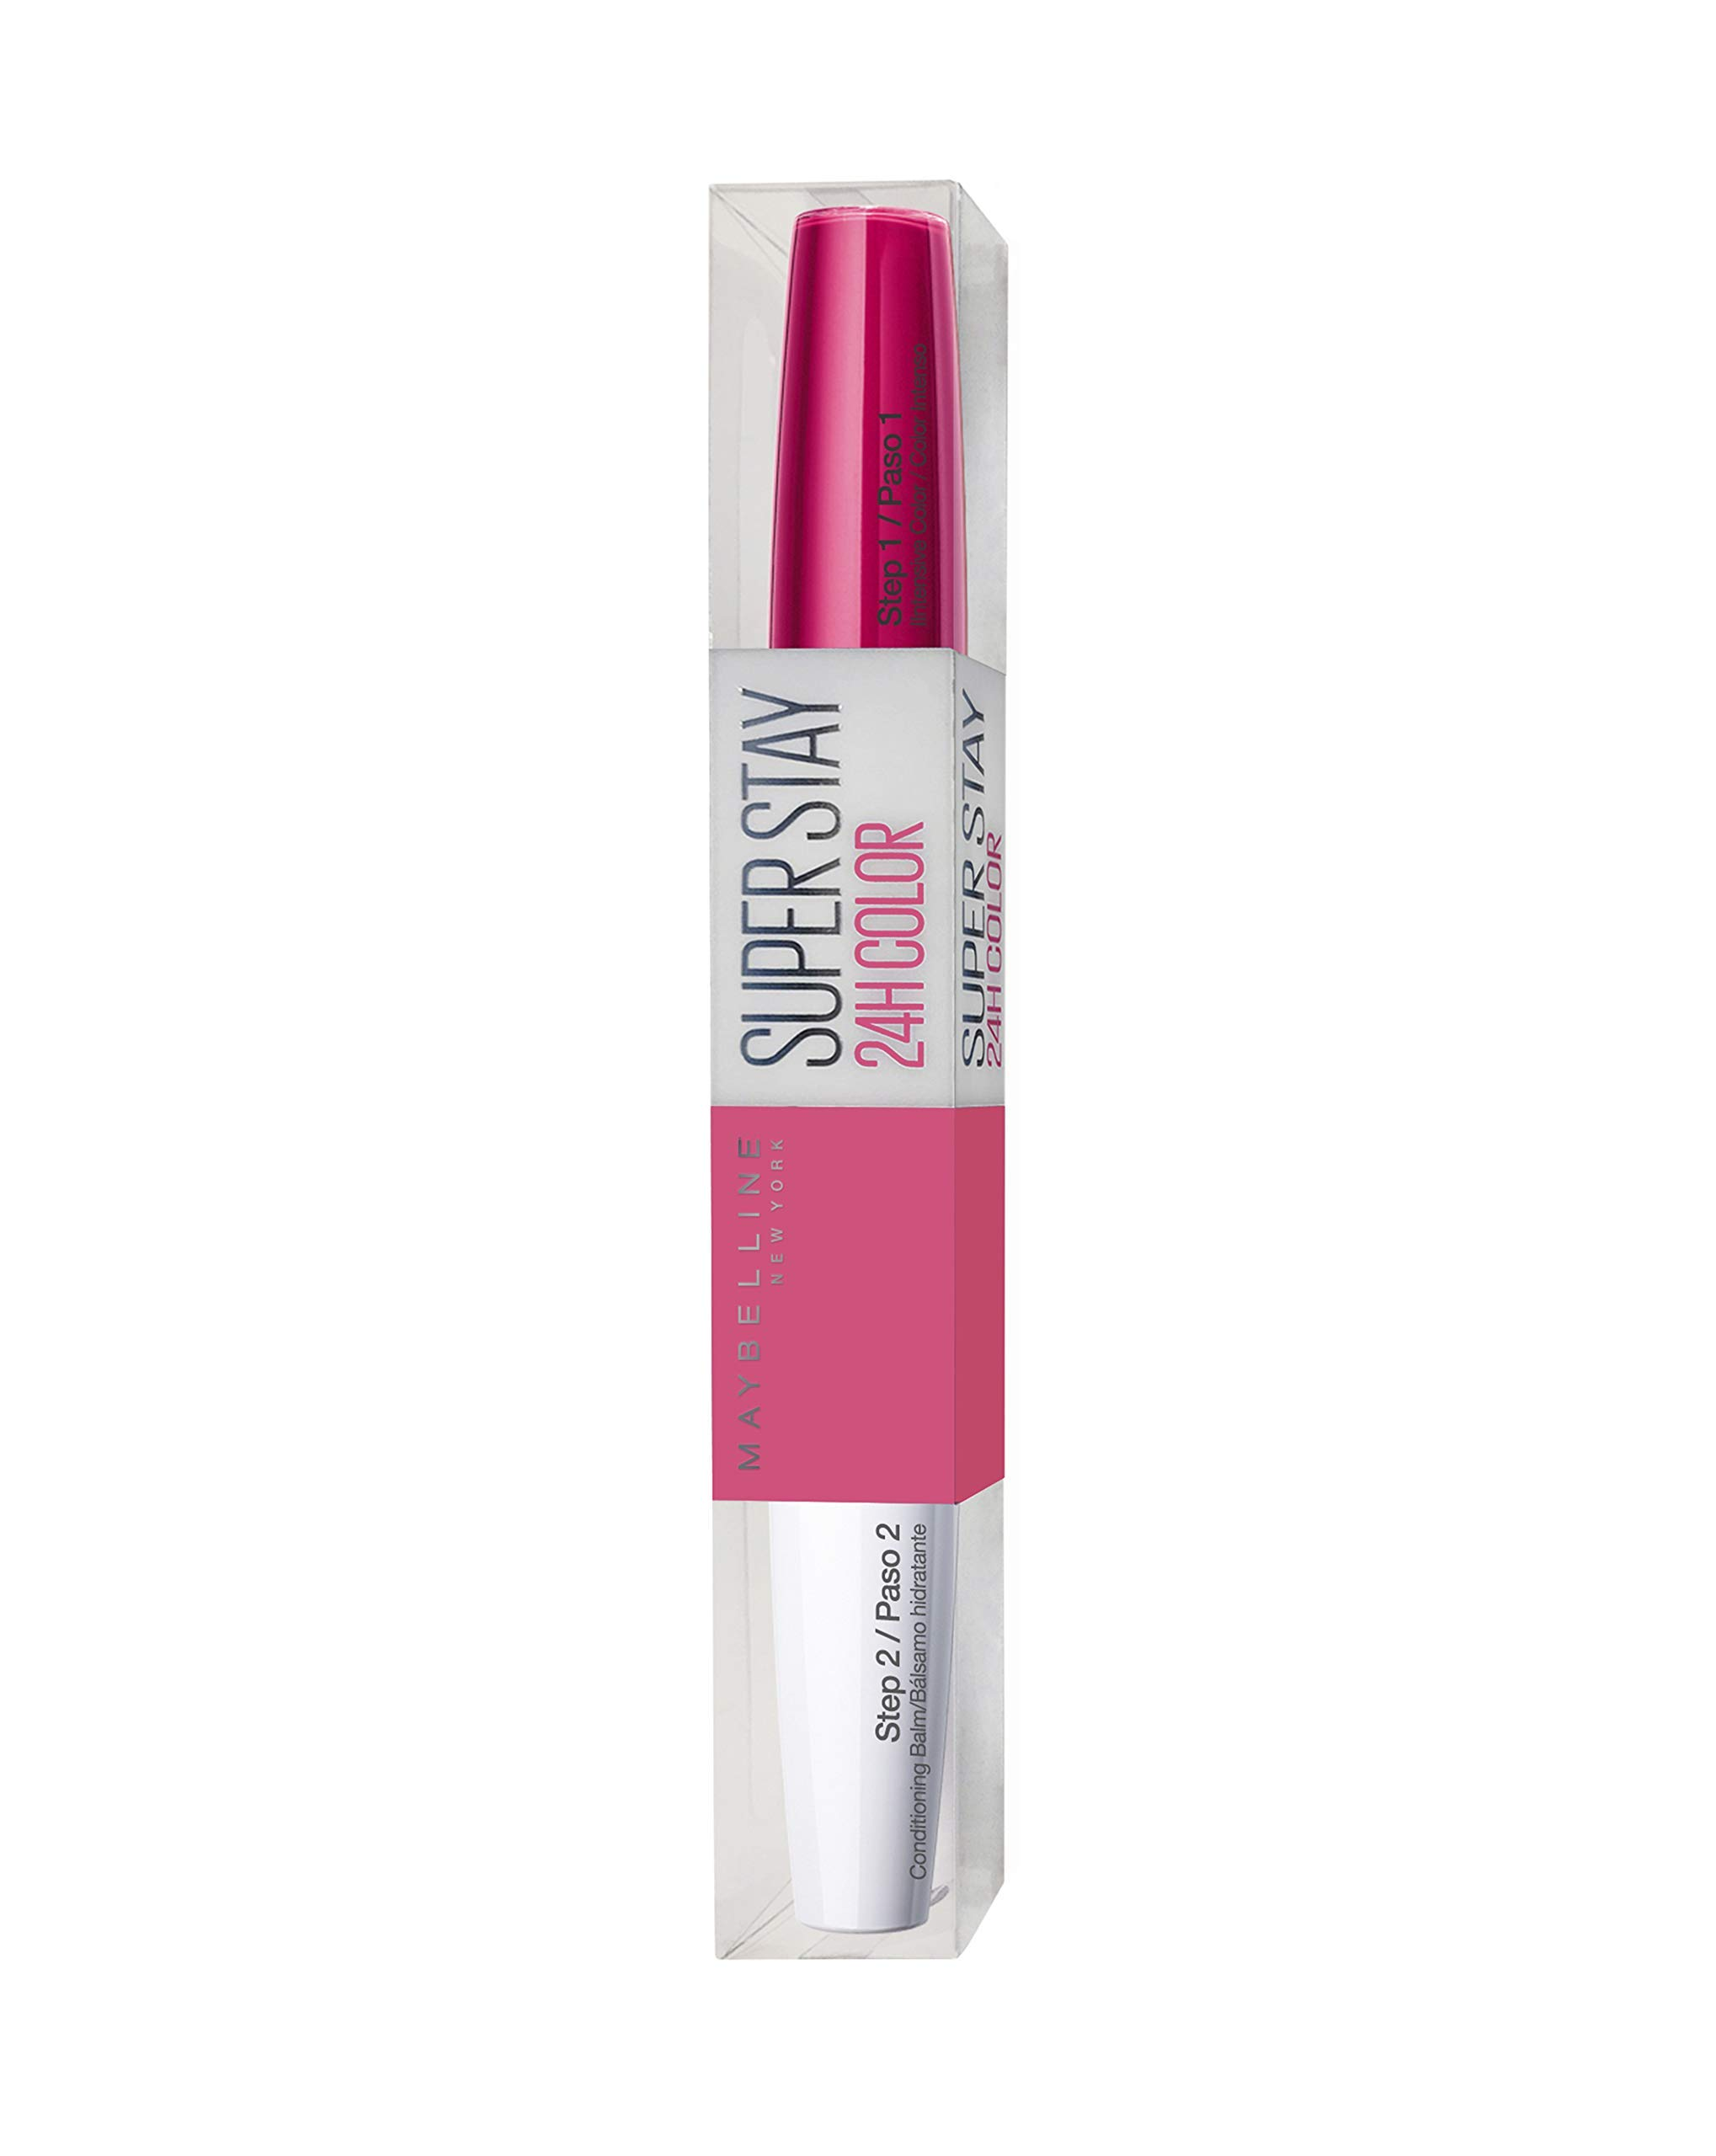 Maybelline Pintalabios Larga Duración Superstay 24H Tono 183 Pink Color Rosa